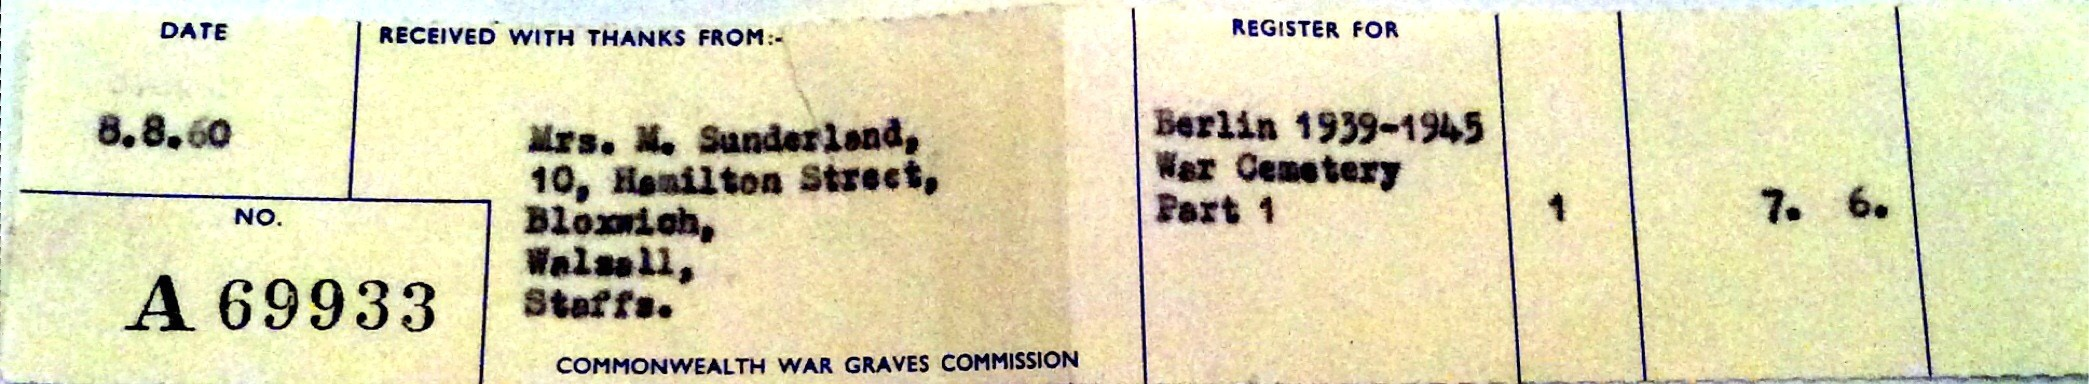 Receipt for the entry in the 1960 Memorial Register for the Berlin War Cemetery